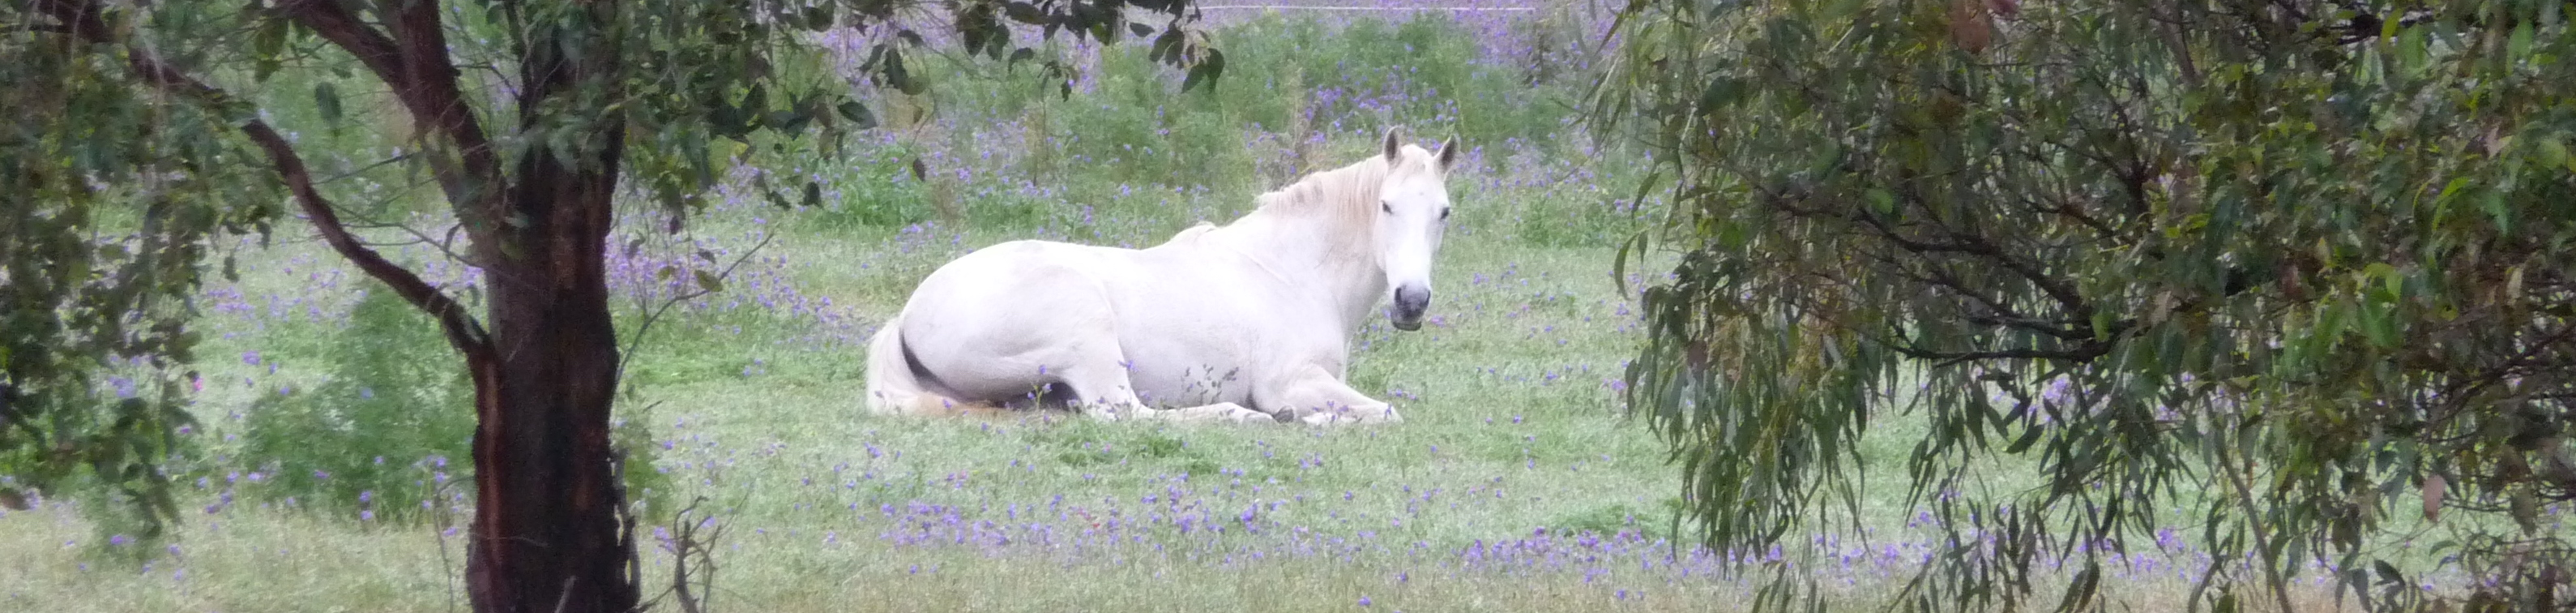 Vaccinosis and Your Horse